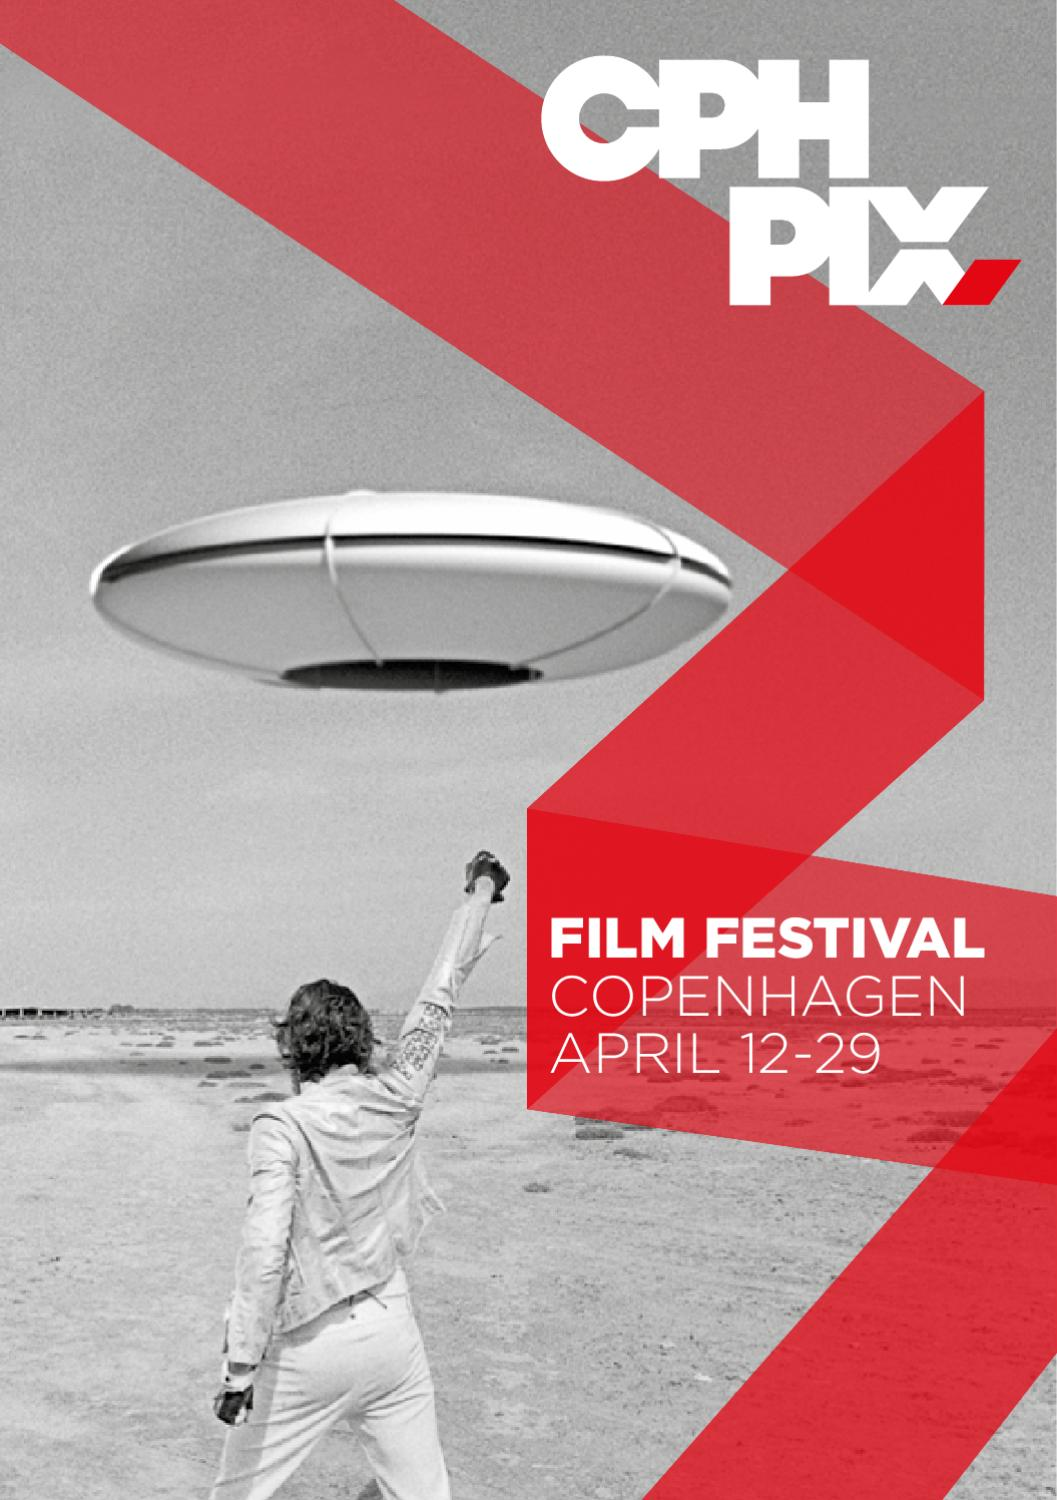 CPH PIX 2012 English Catalogue by CPH Filmfestivals - issuu